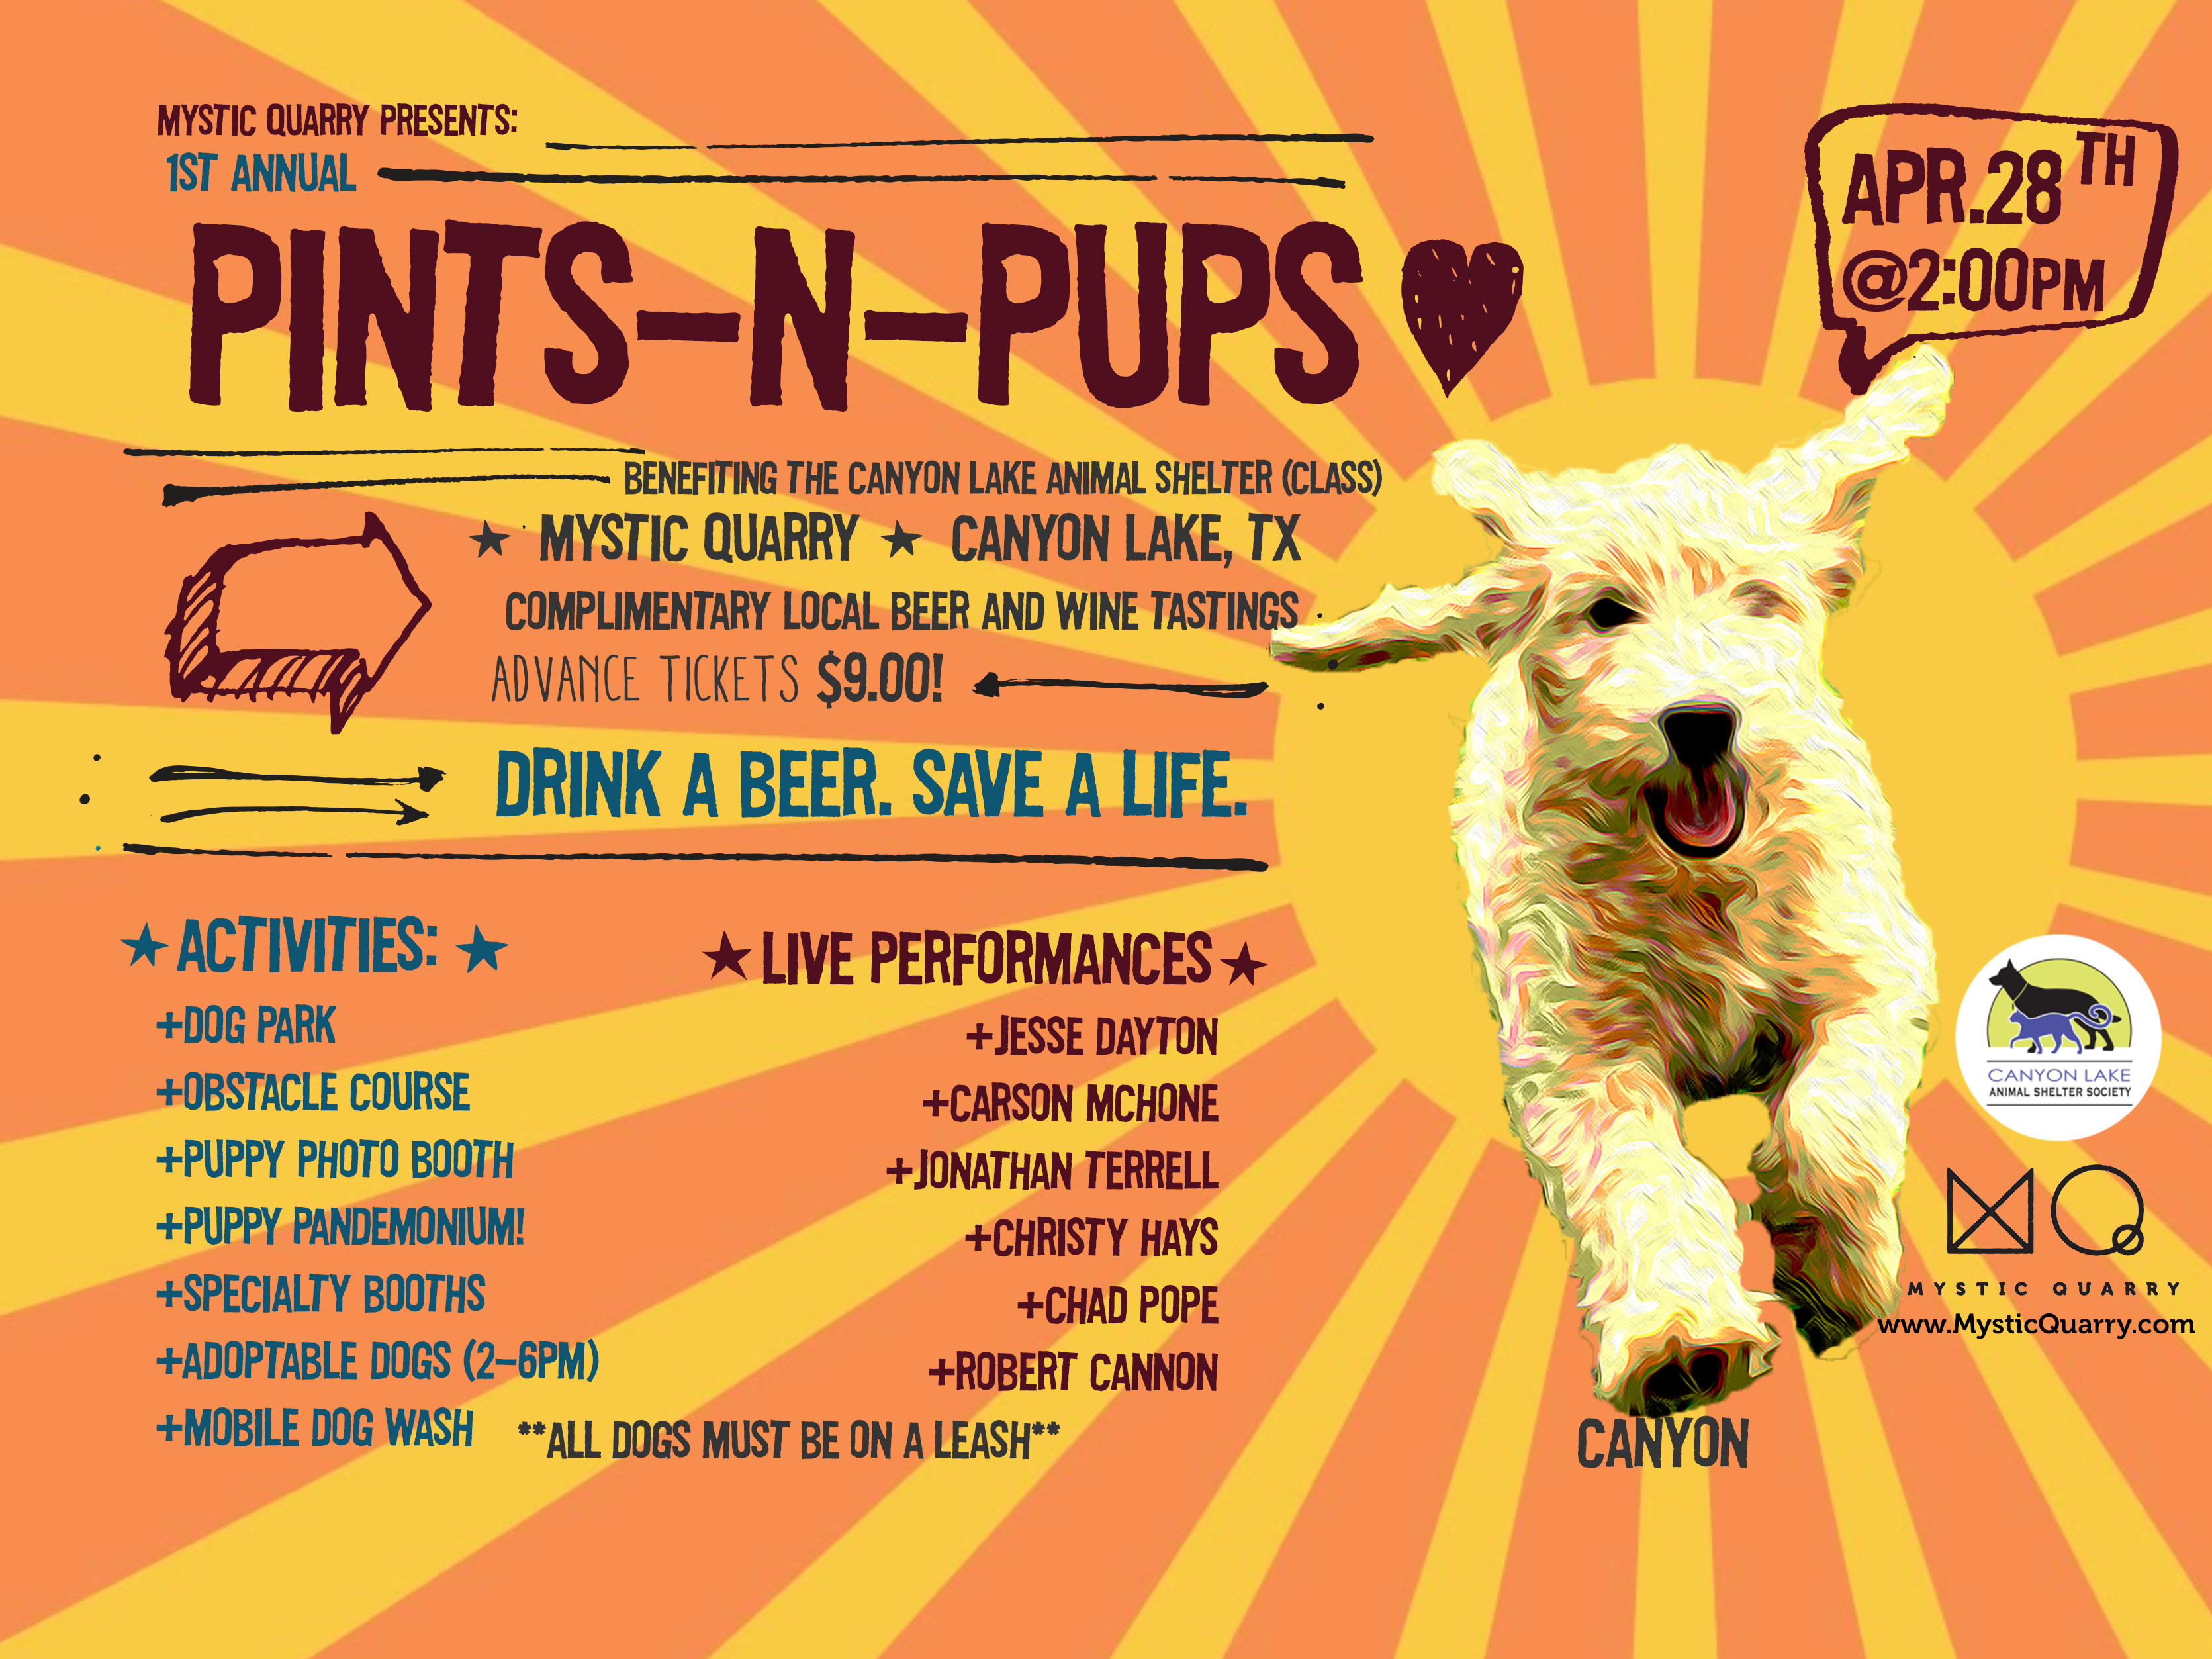 Pints-N-Pups_Jim's canyon1.png